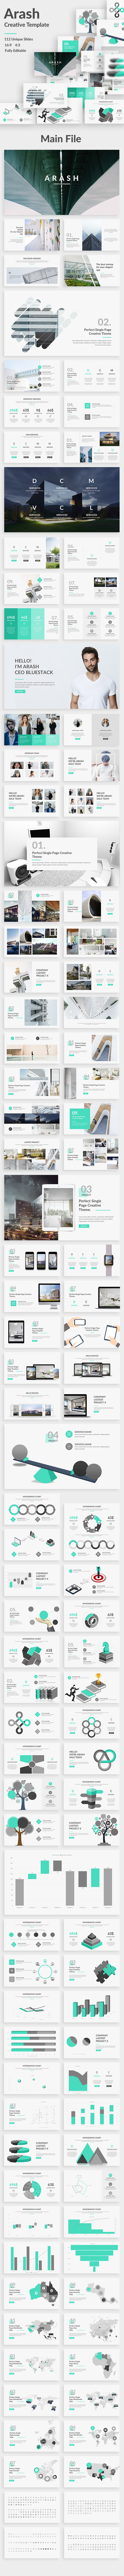 Arash Creative Powerpoint Template - Creative PowerPoint Templates